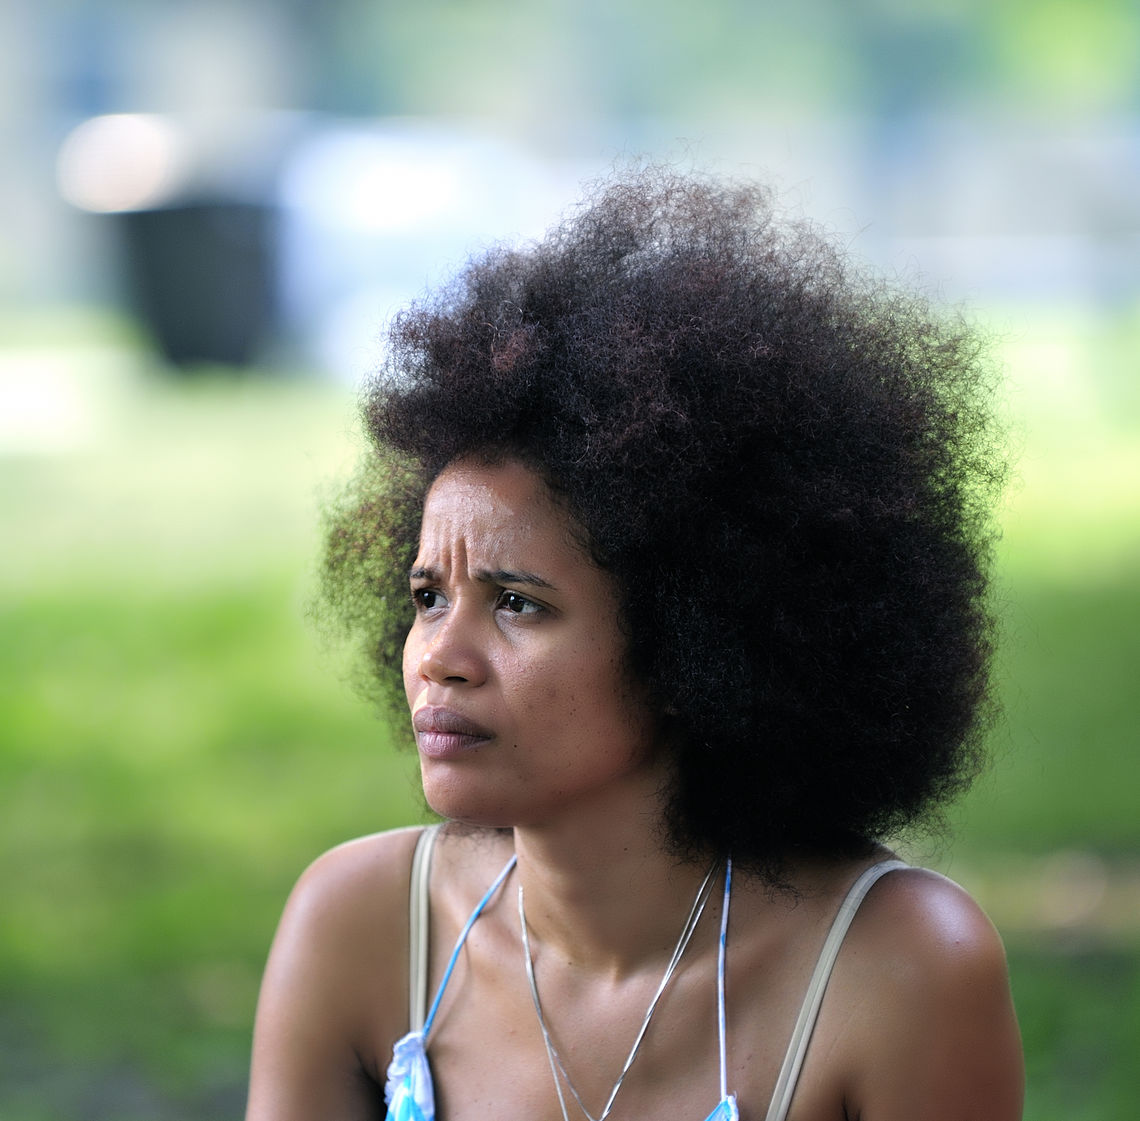 franklin marshall performance artist chin keynote for f m s poet and activist staceyann chin will be the keynote performer at franklin marshall college s revamped observance of take back the night